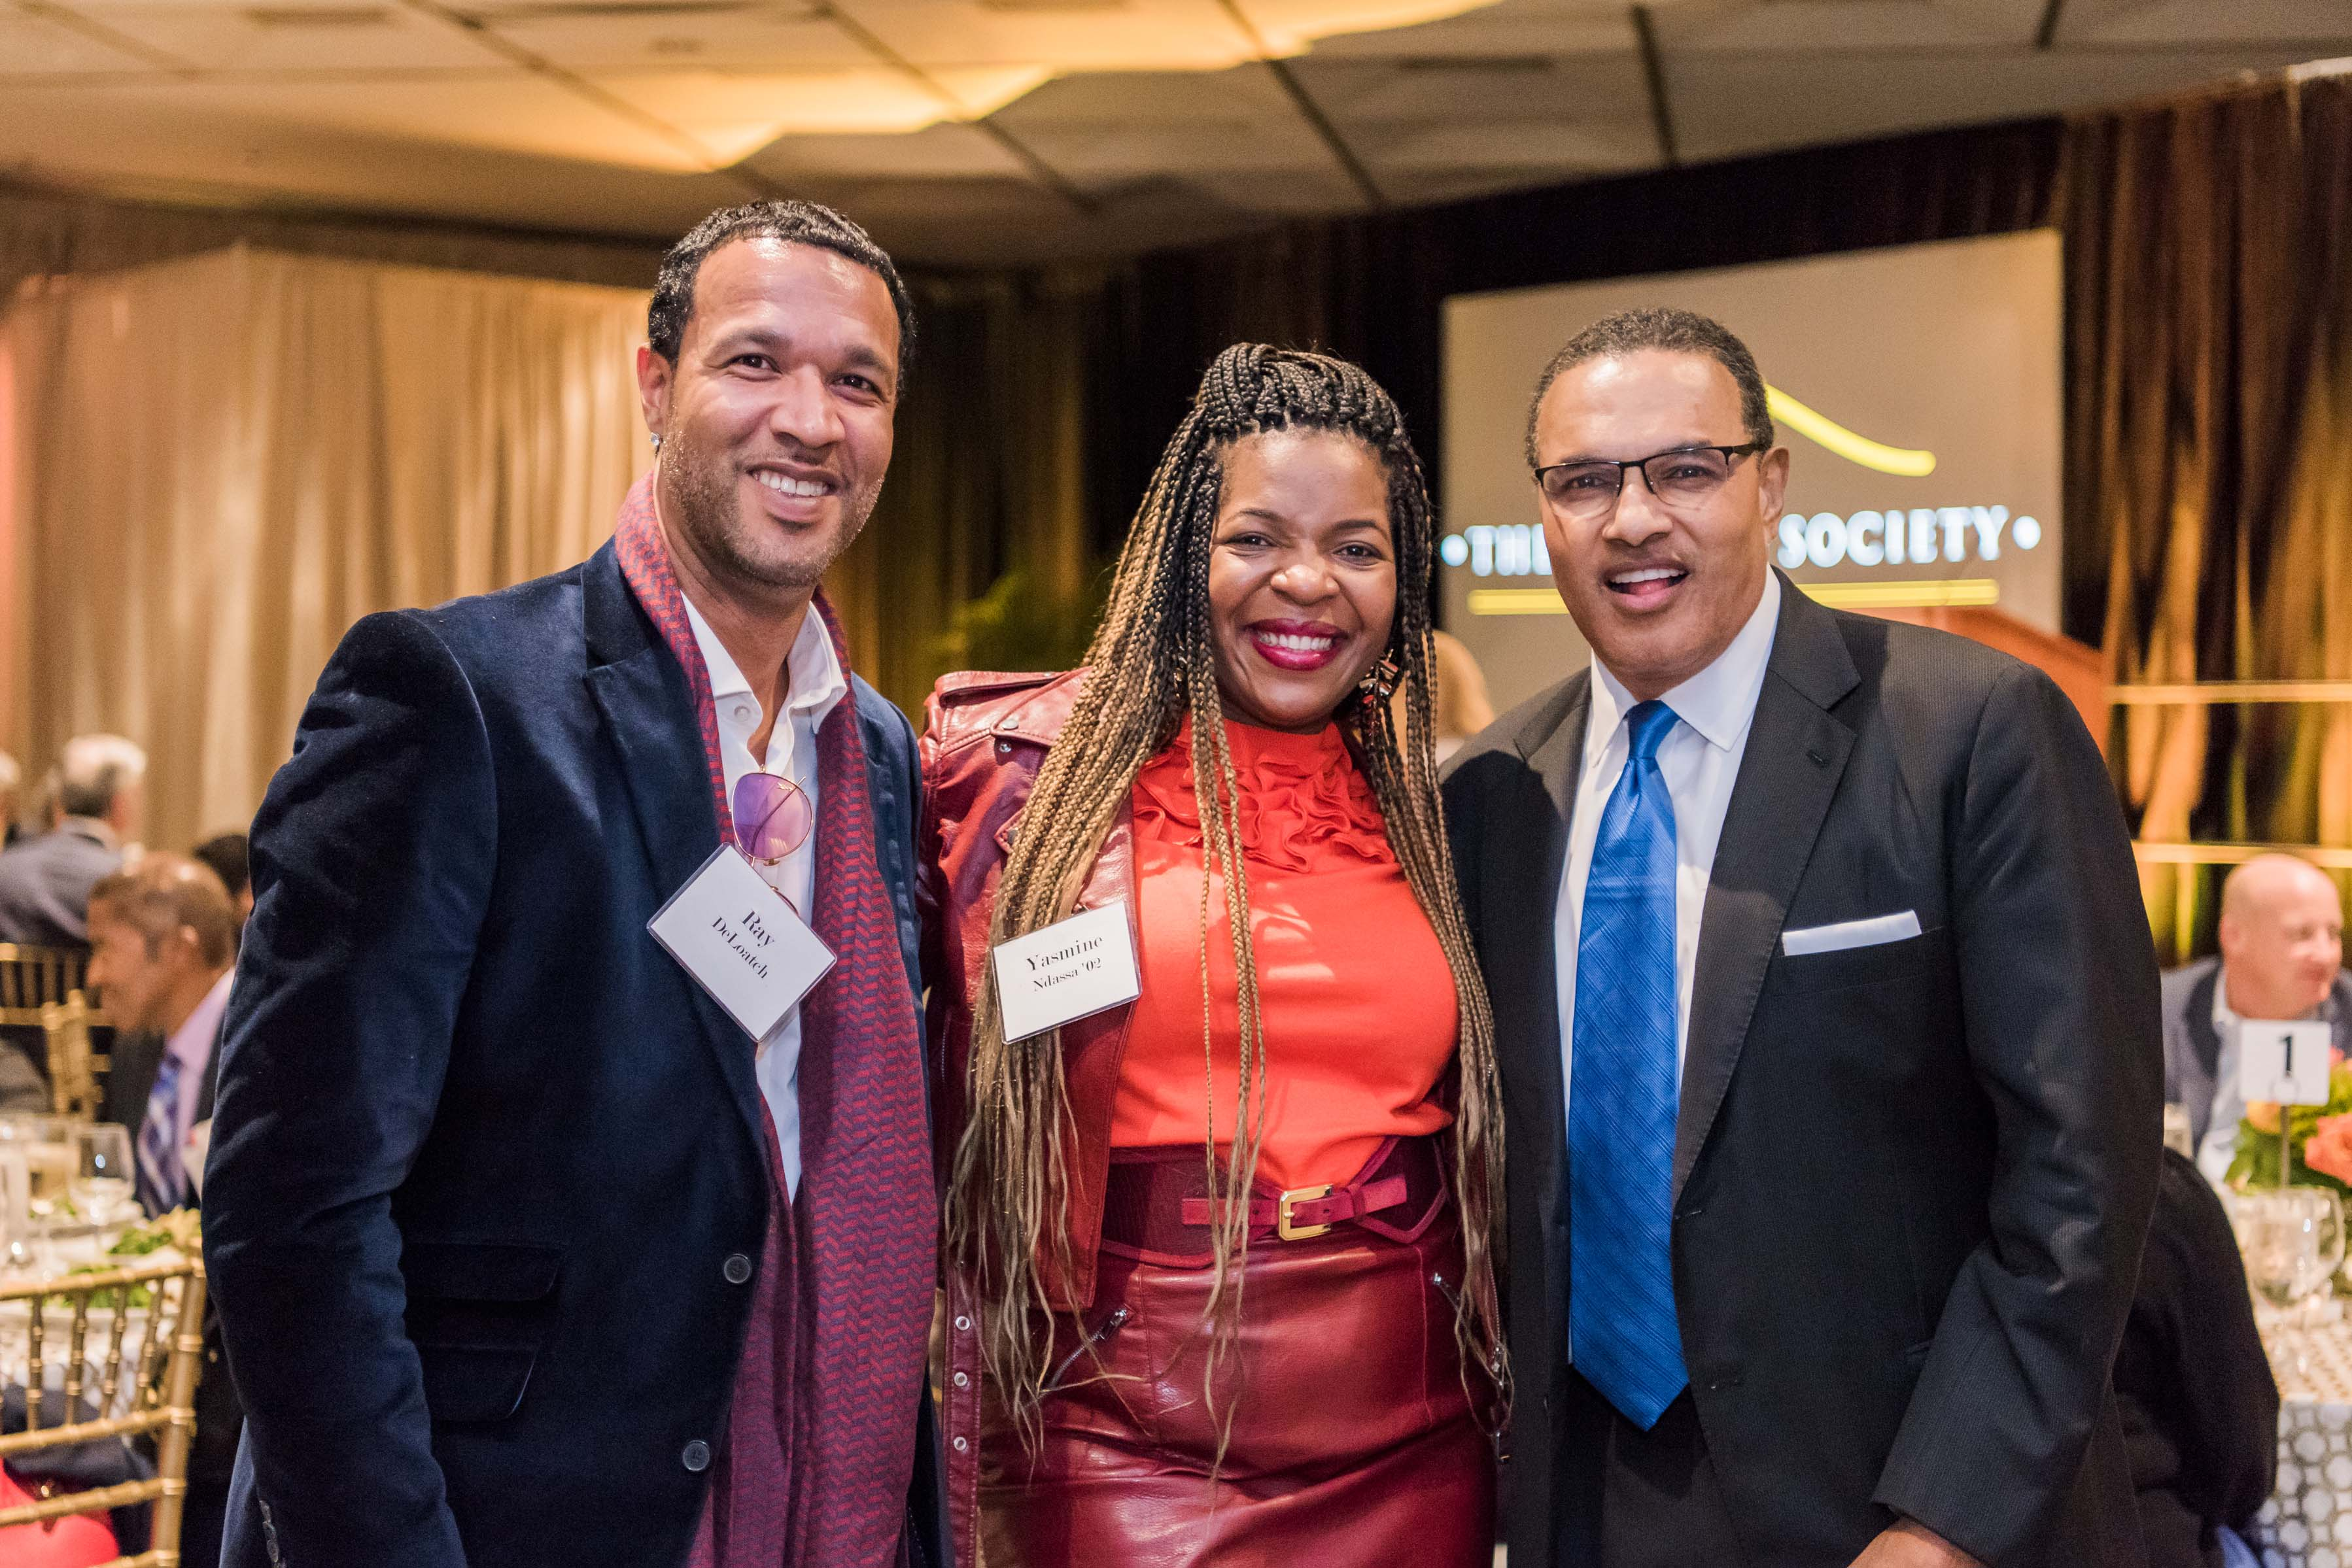 President Hrabowski poses with Ray Deloatch and Yasmine Ndassa at dinner